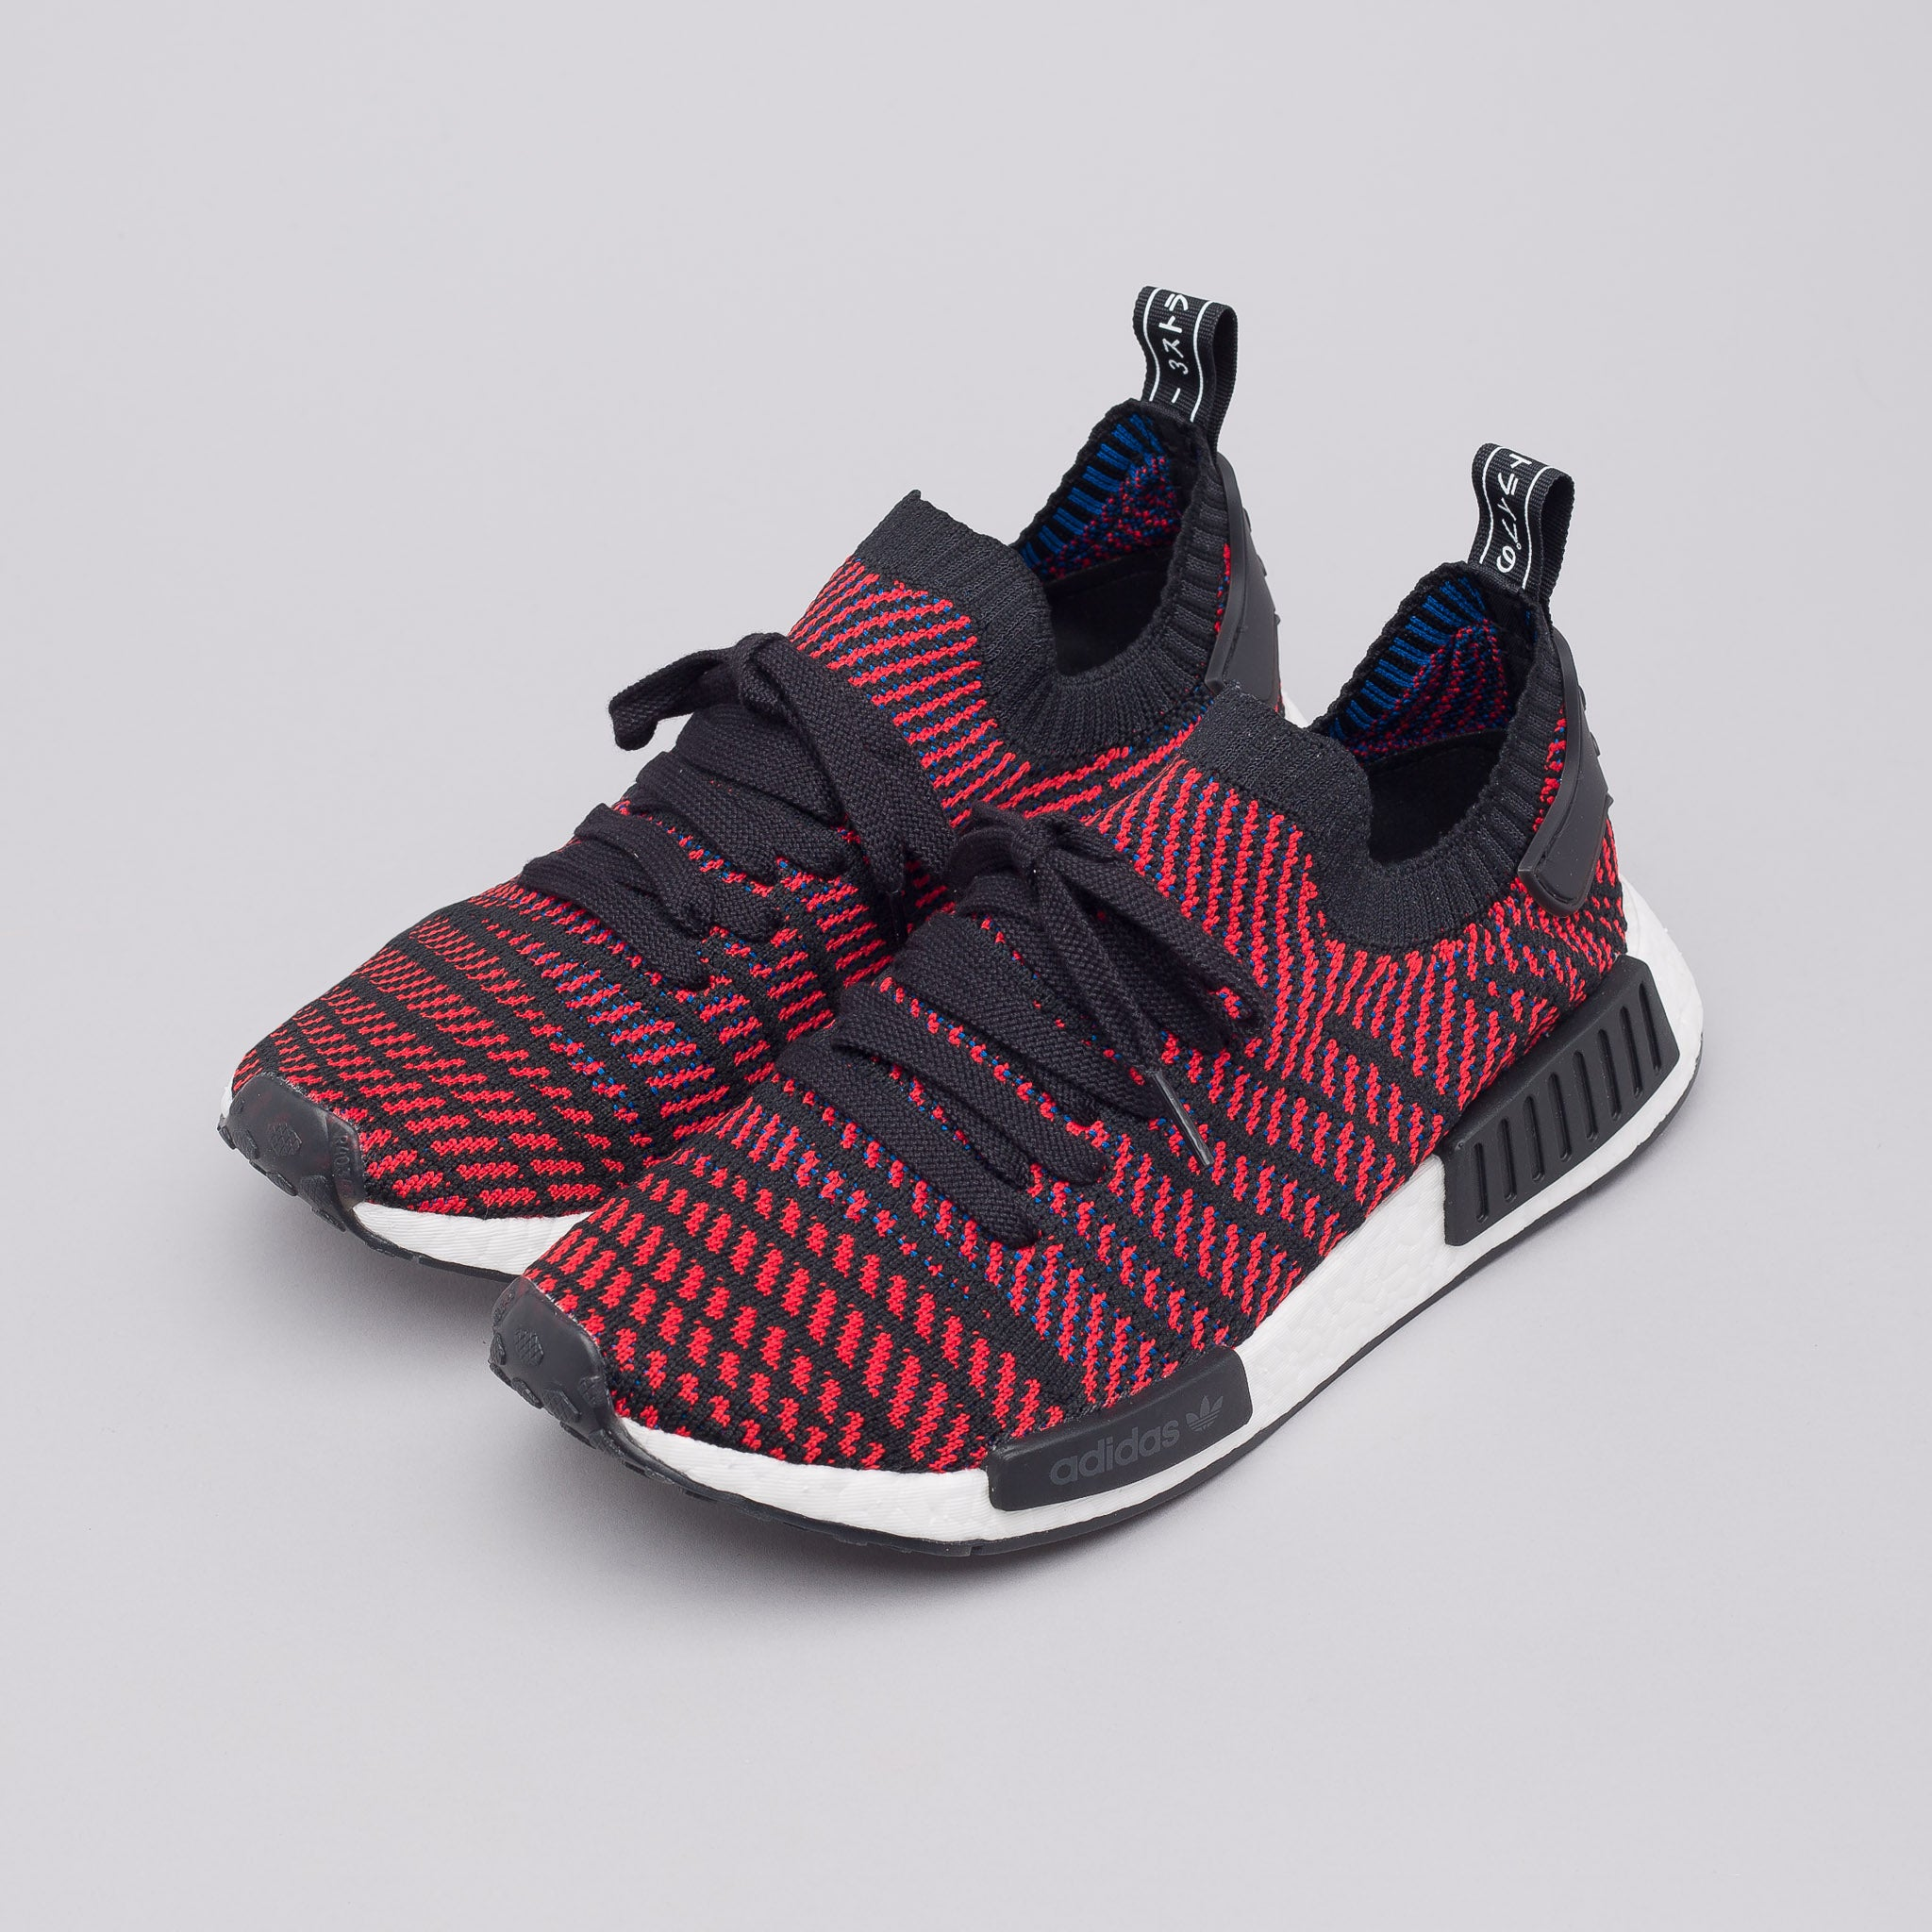 Where to buy ADIDAS NMD R1 Mens Shoes J3k5761, adidas football